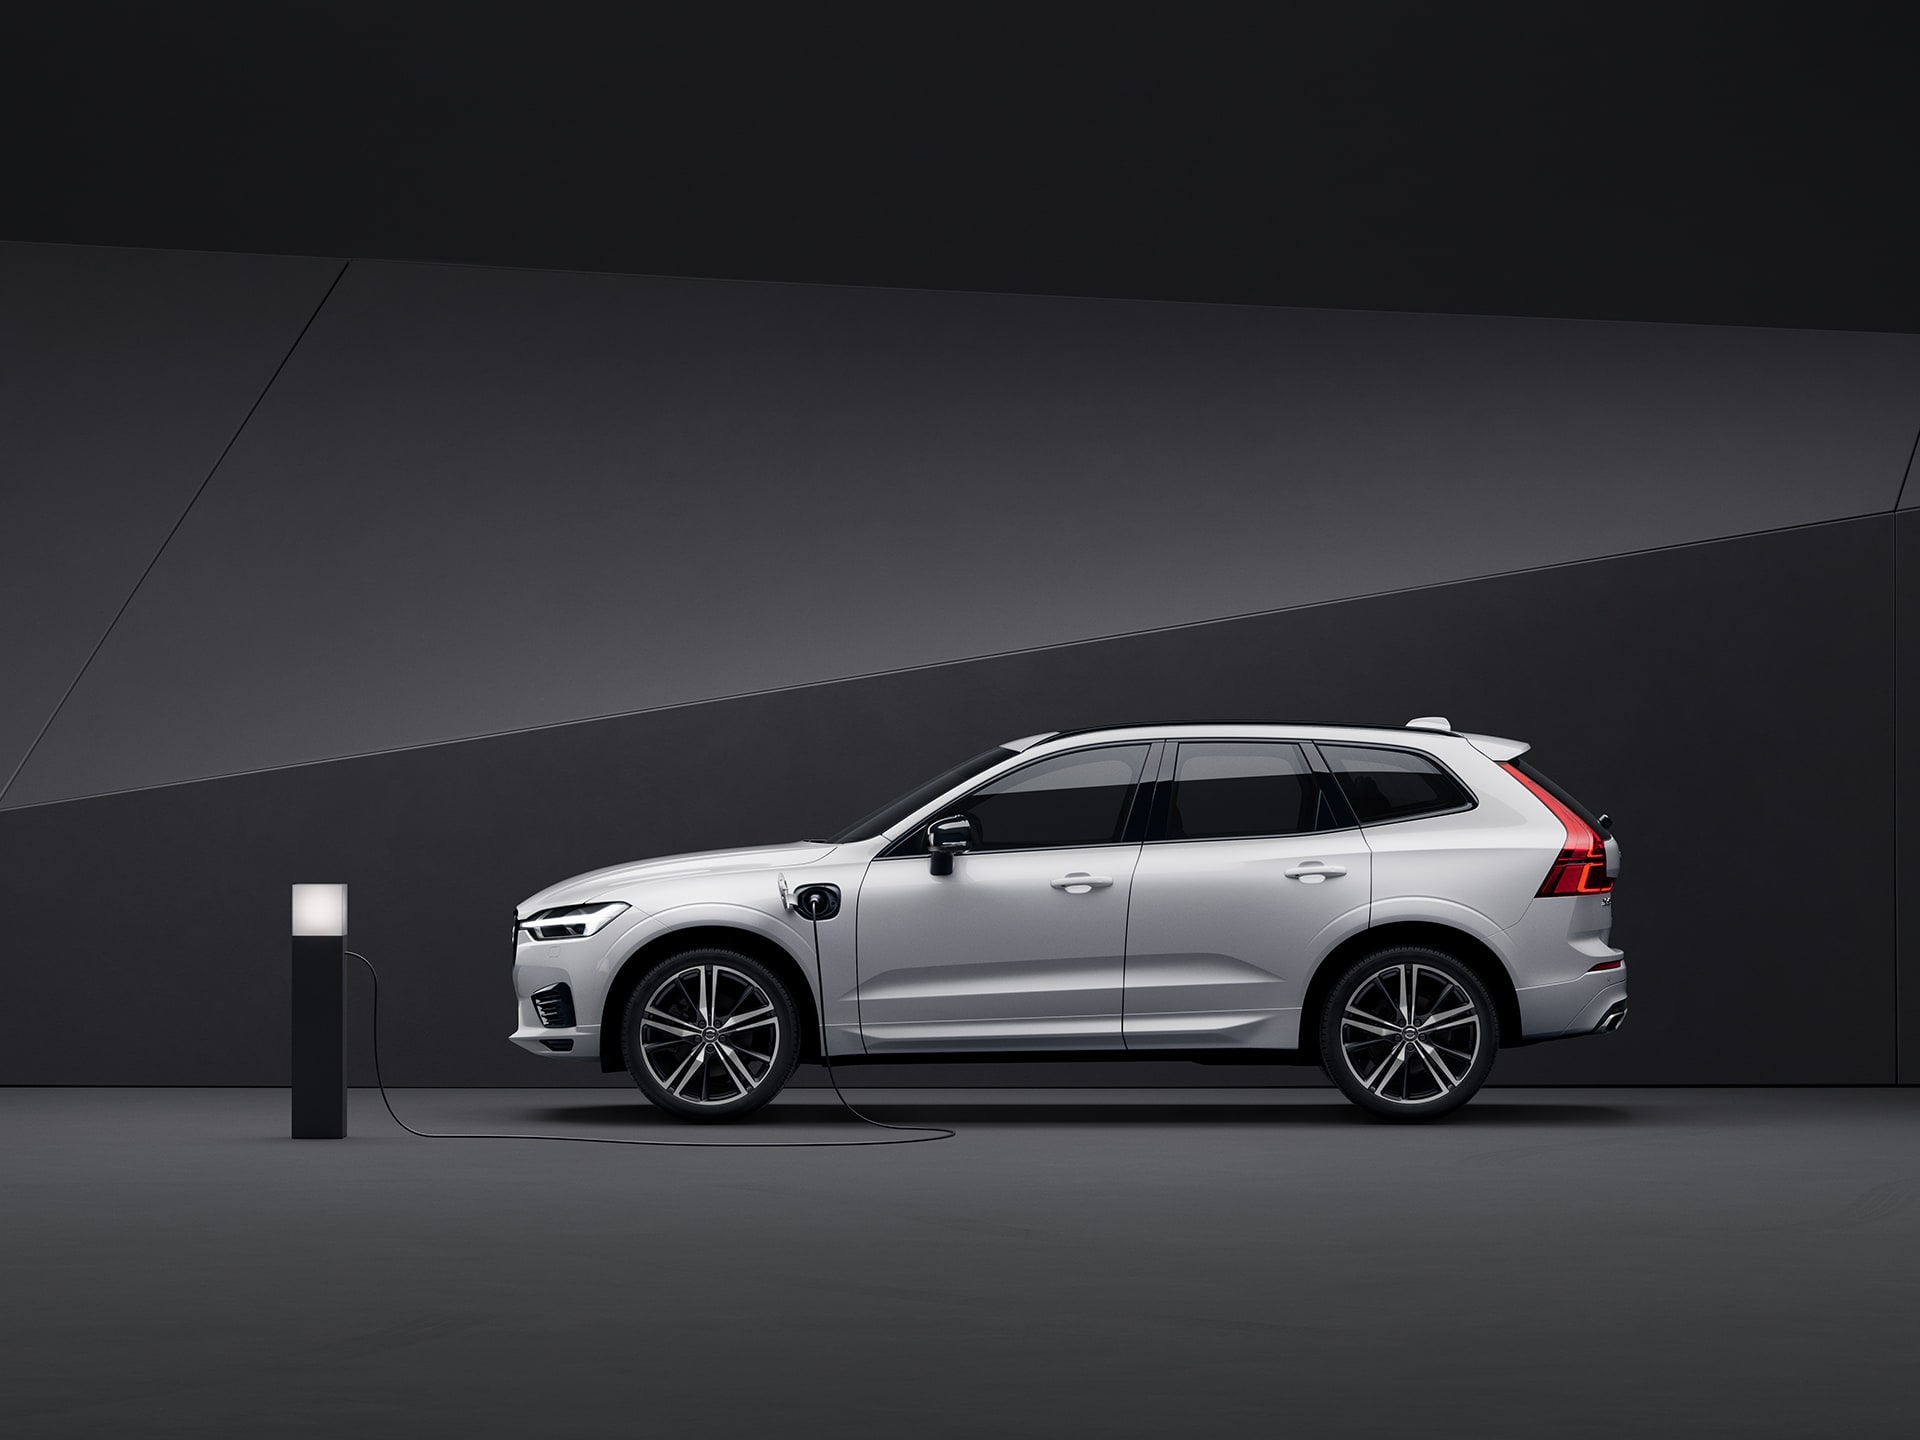 A white Volvo XC60 Recharge plug-in hybrid SUV charges in a black surrounding.